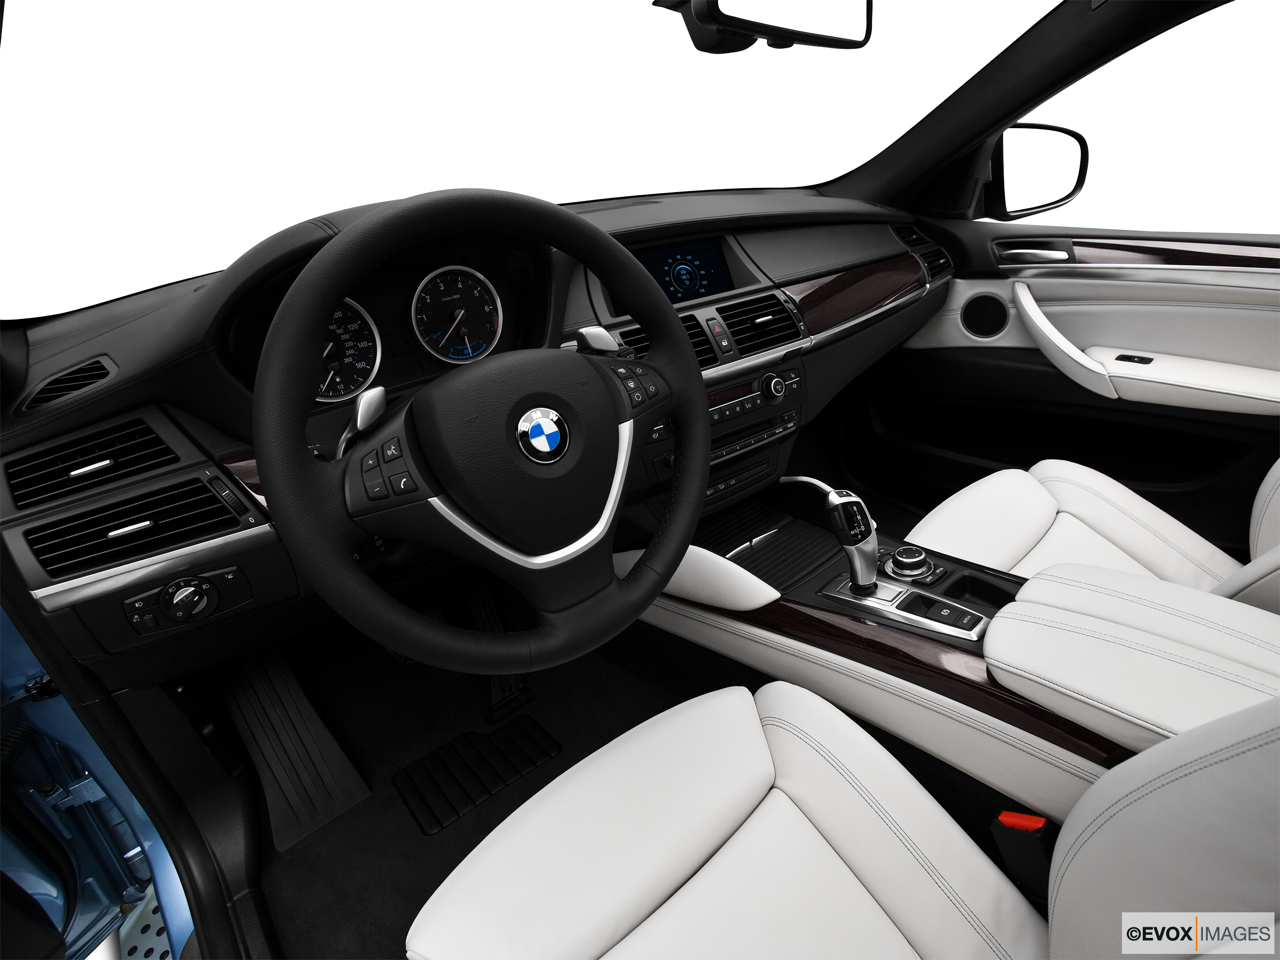 2010 BMW X6 Hybrid Base Interior Hero (driver's side).